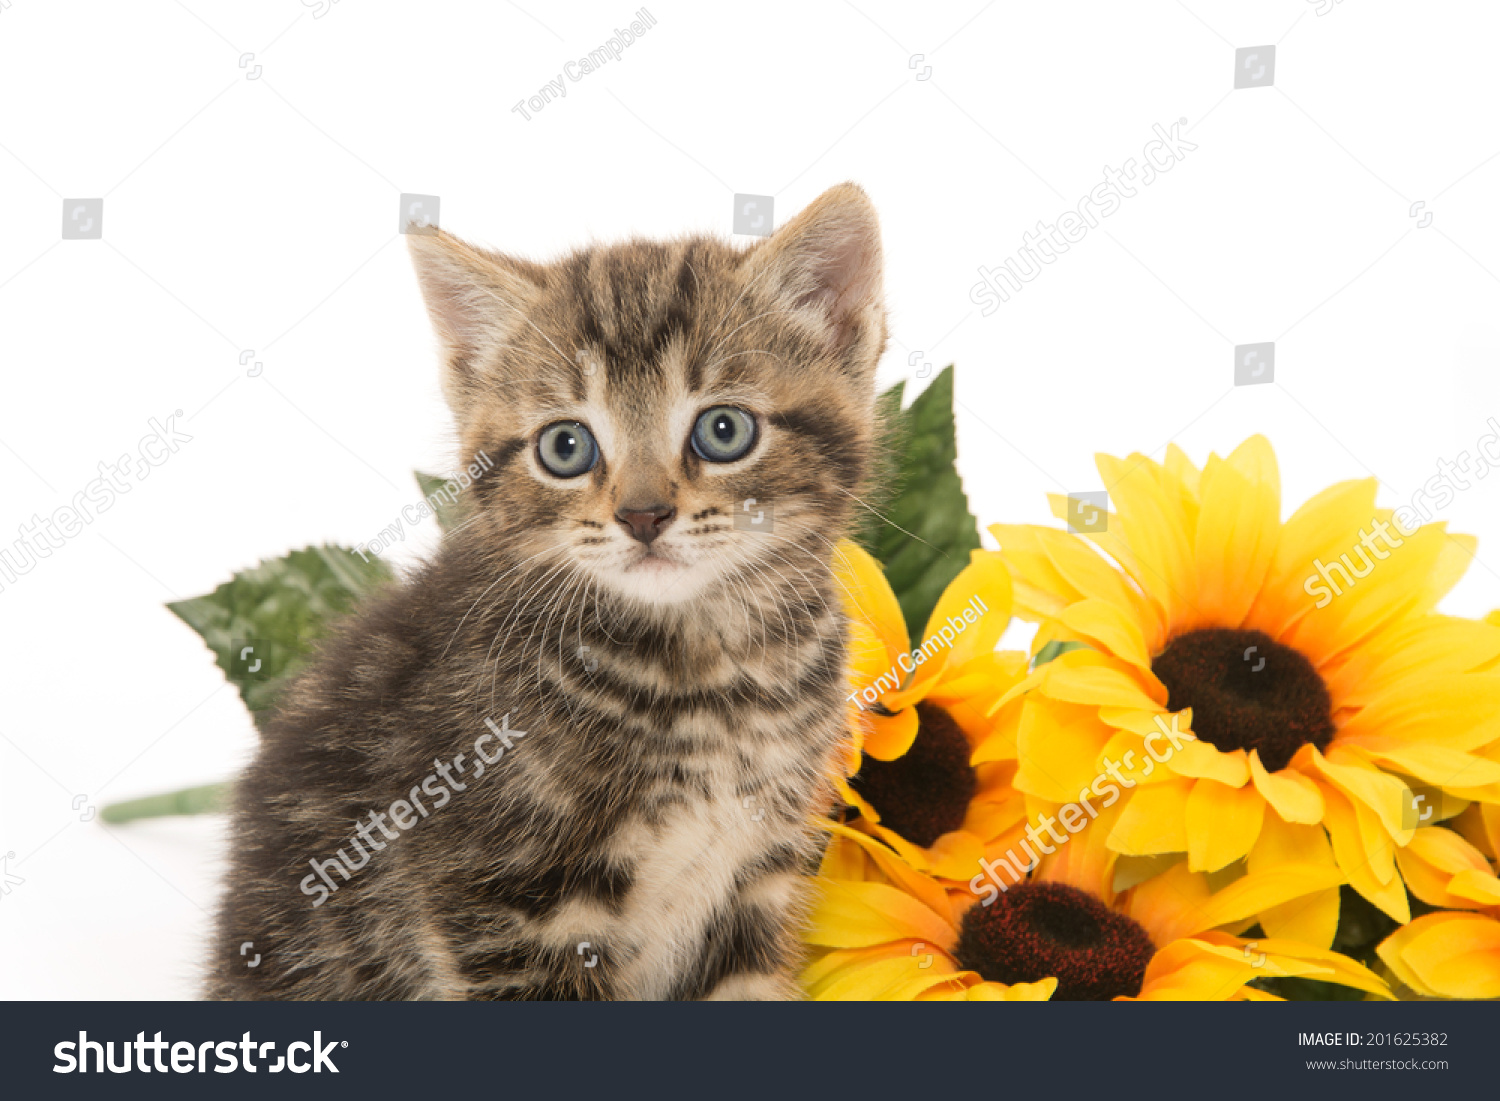 Cute Baby Tabby Kitten With Yellow Flowers On White Background Ez